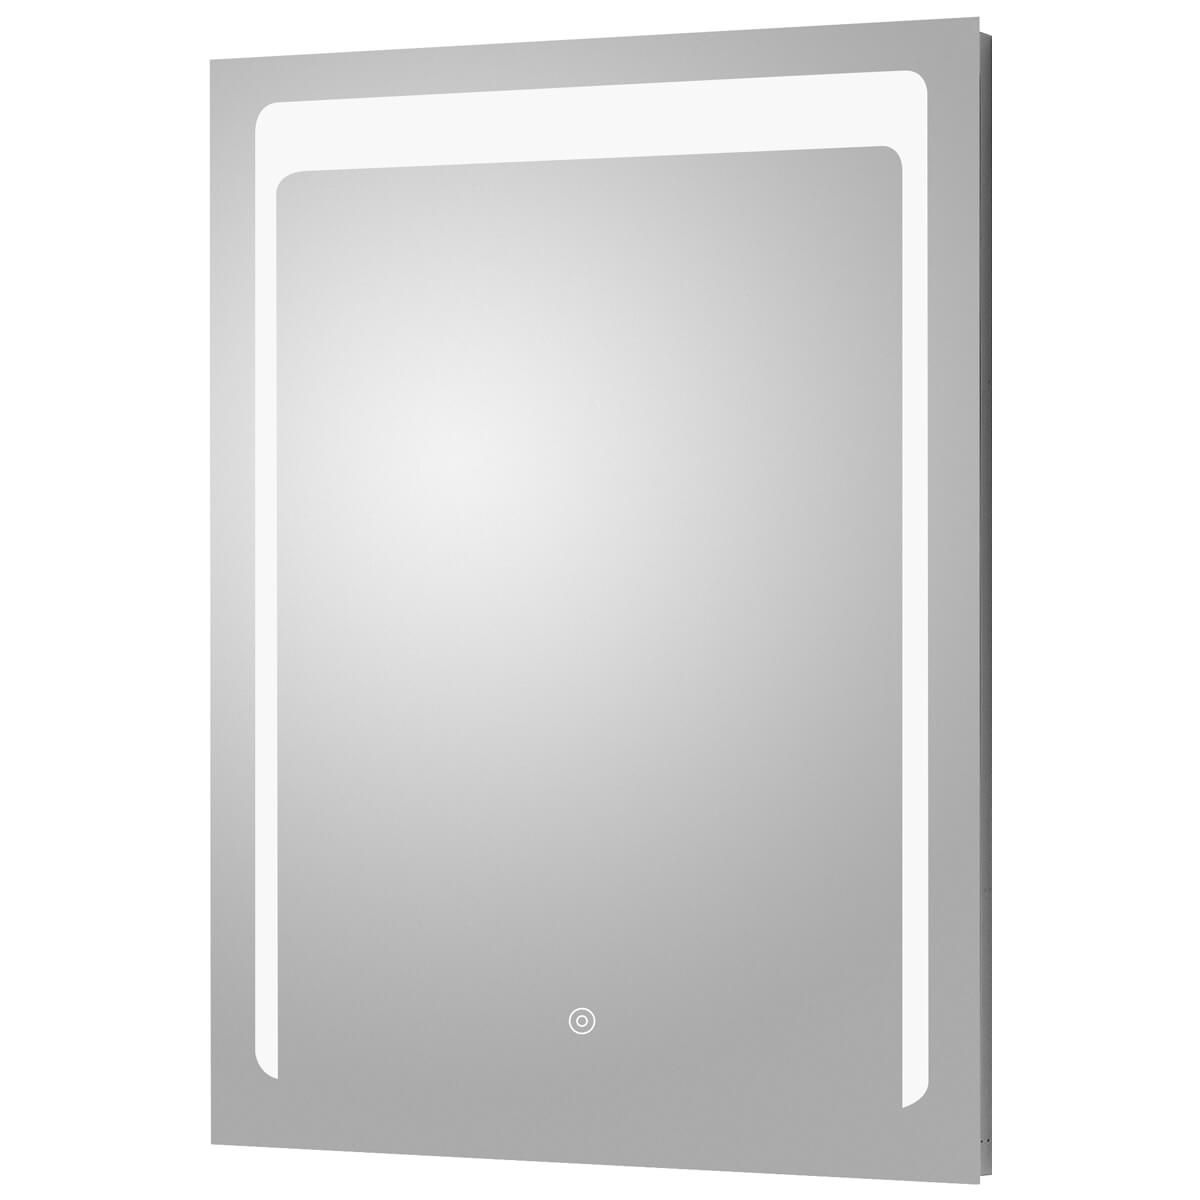 Hudson Reed 700 x 500 LED Mirror